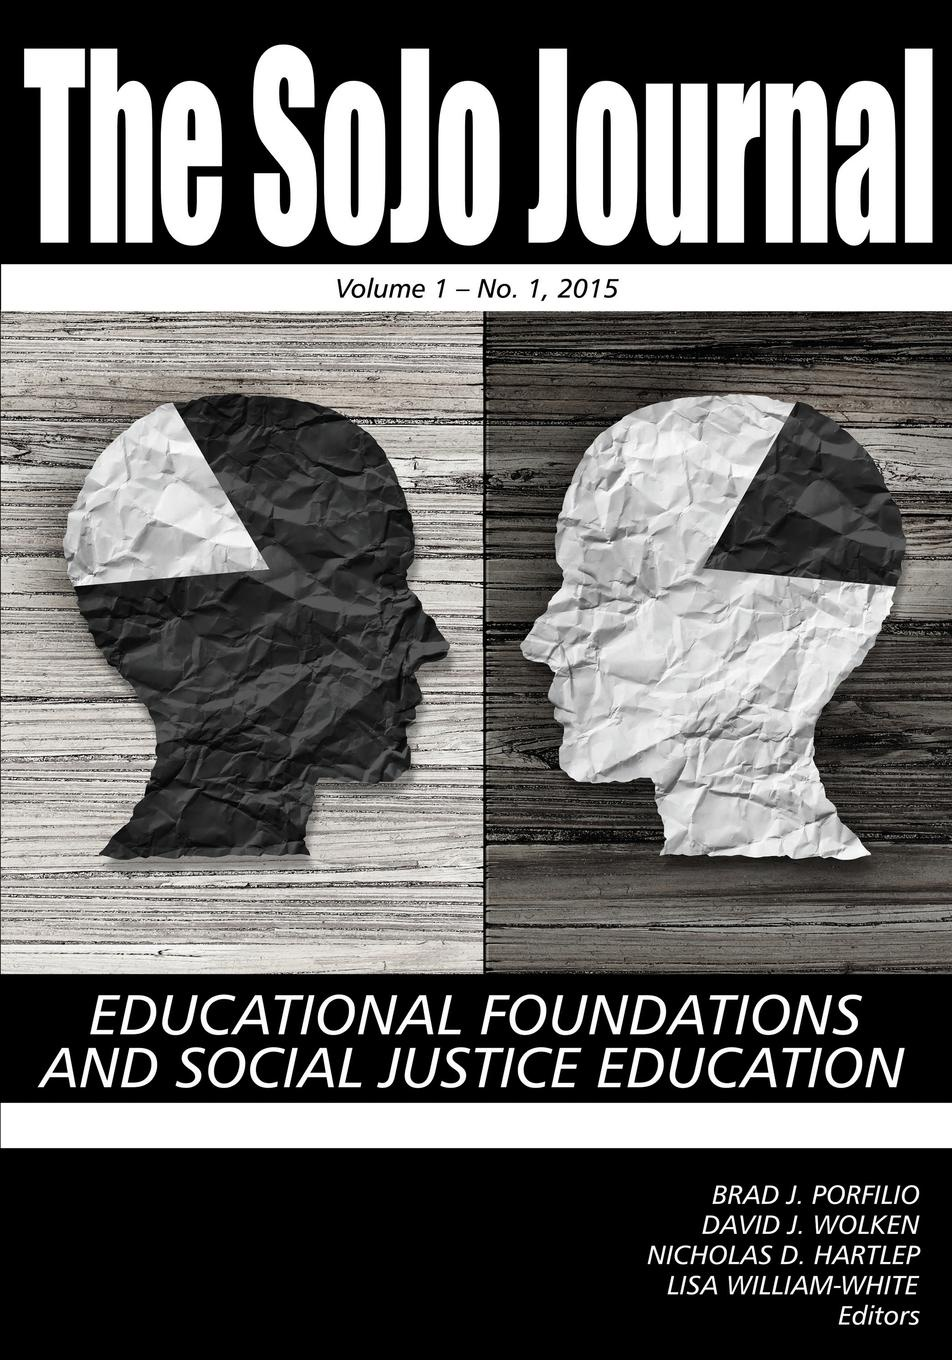 The SoJo Journal. Educational Foundations and Social Justice Education, Volume 1, Number 1, 2015 boris shulitski the ideological foundations of technological singularity